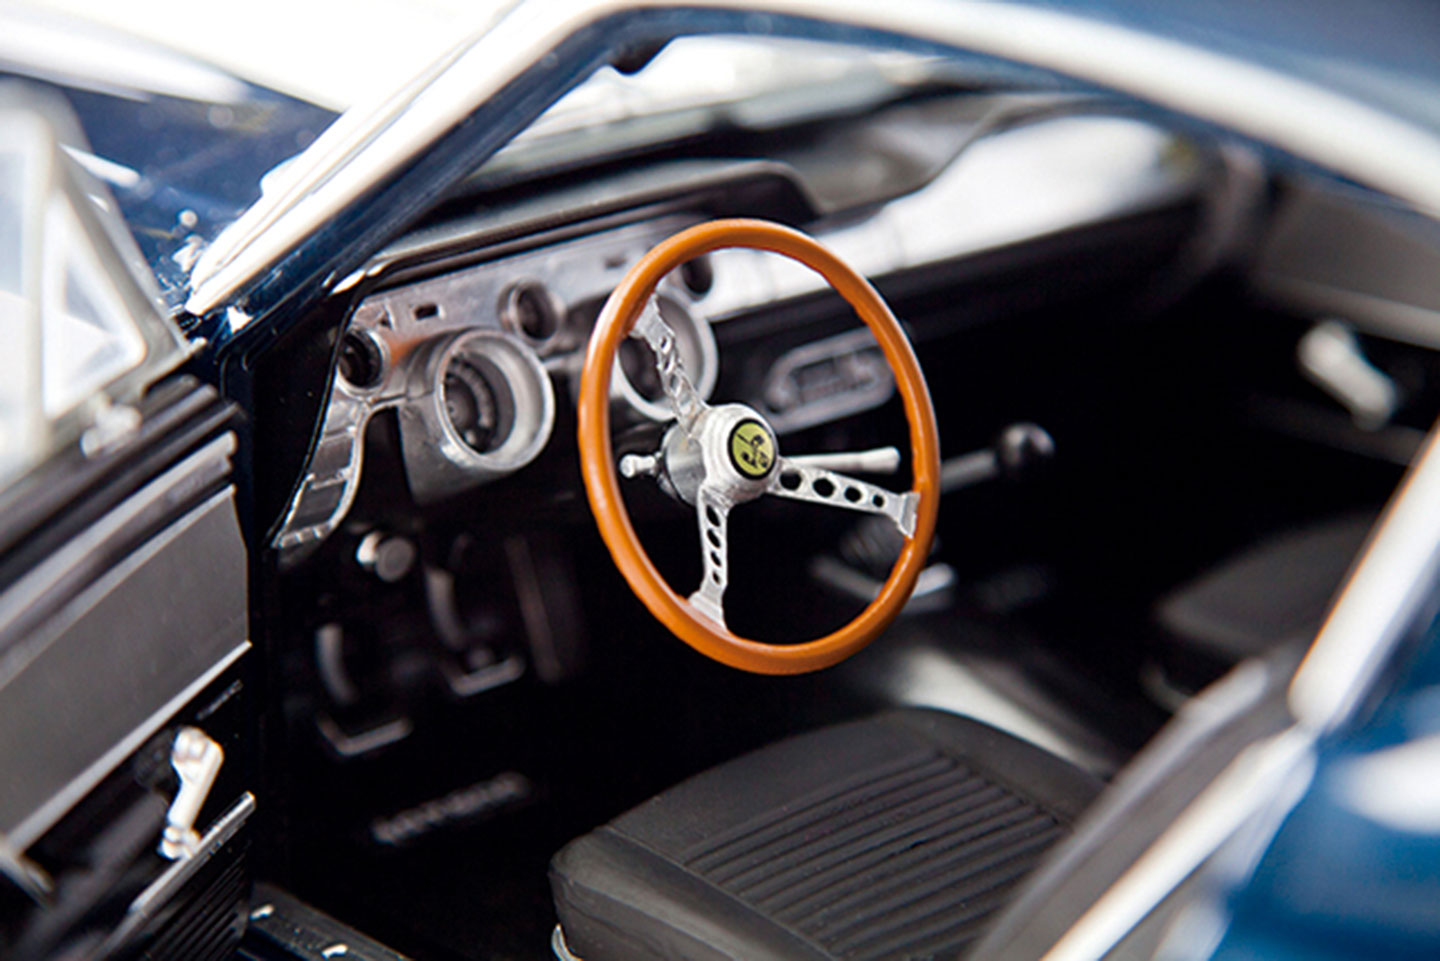 mustang-shelby-steering-wheel-copy.jpg